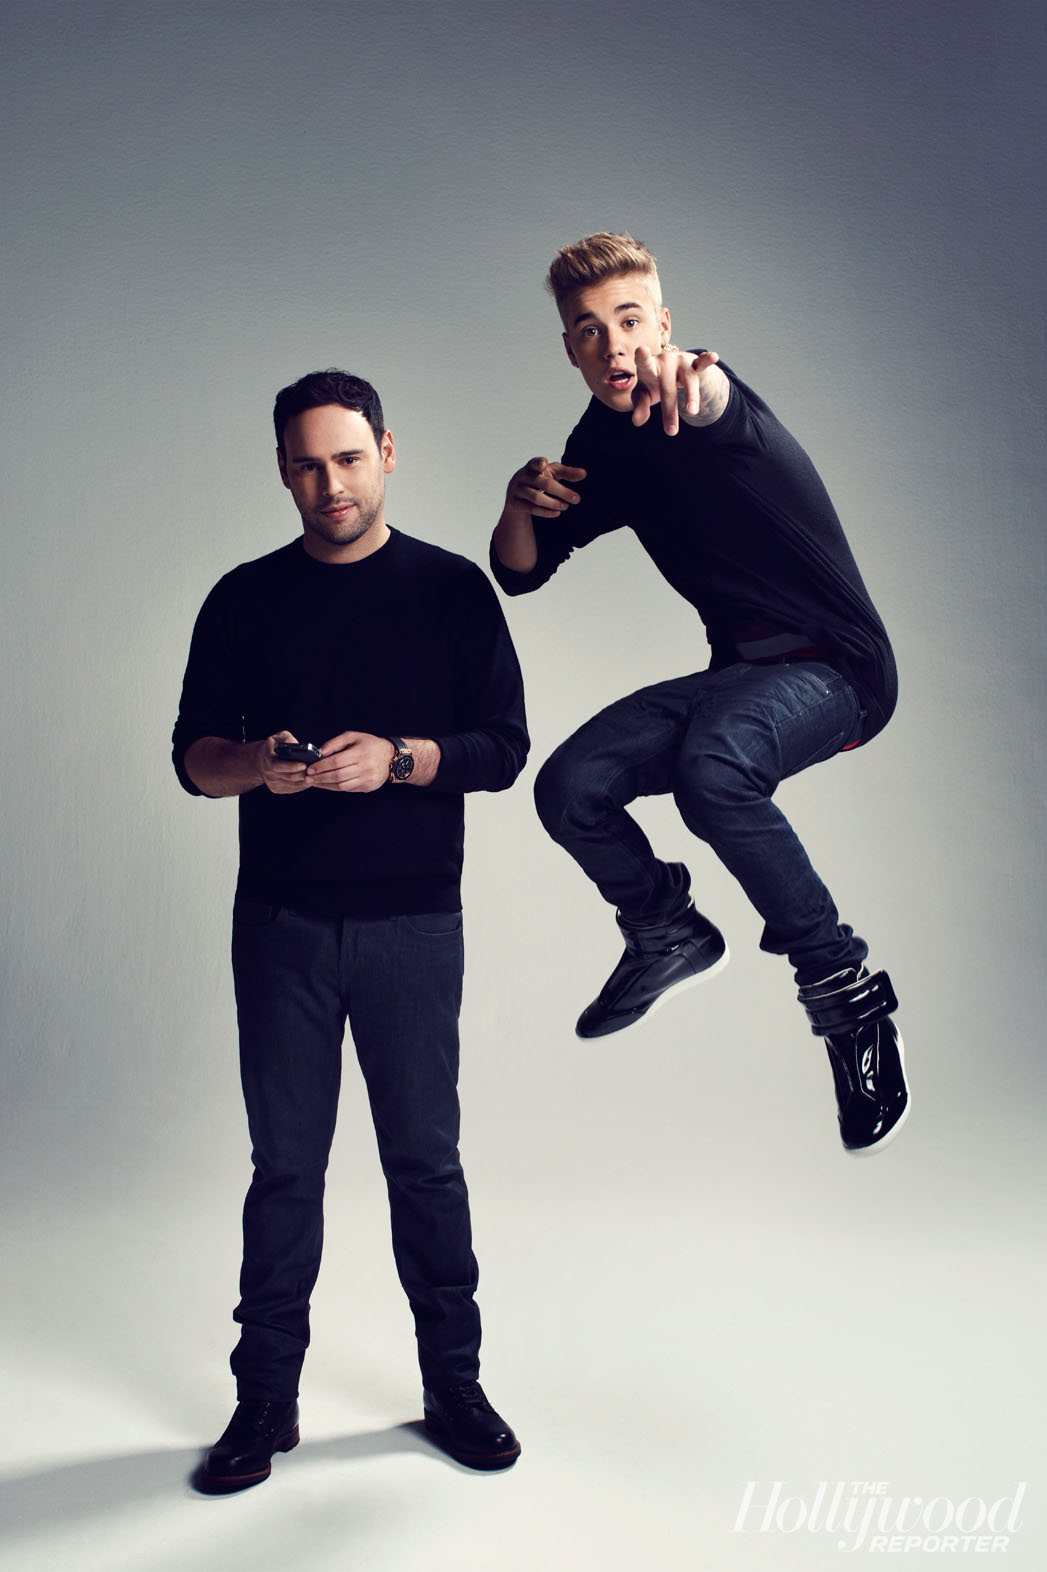 justin-bieber-hollywood-reporter-photoshoot-pictures-04